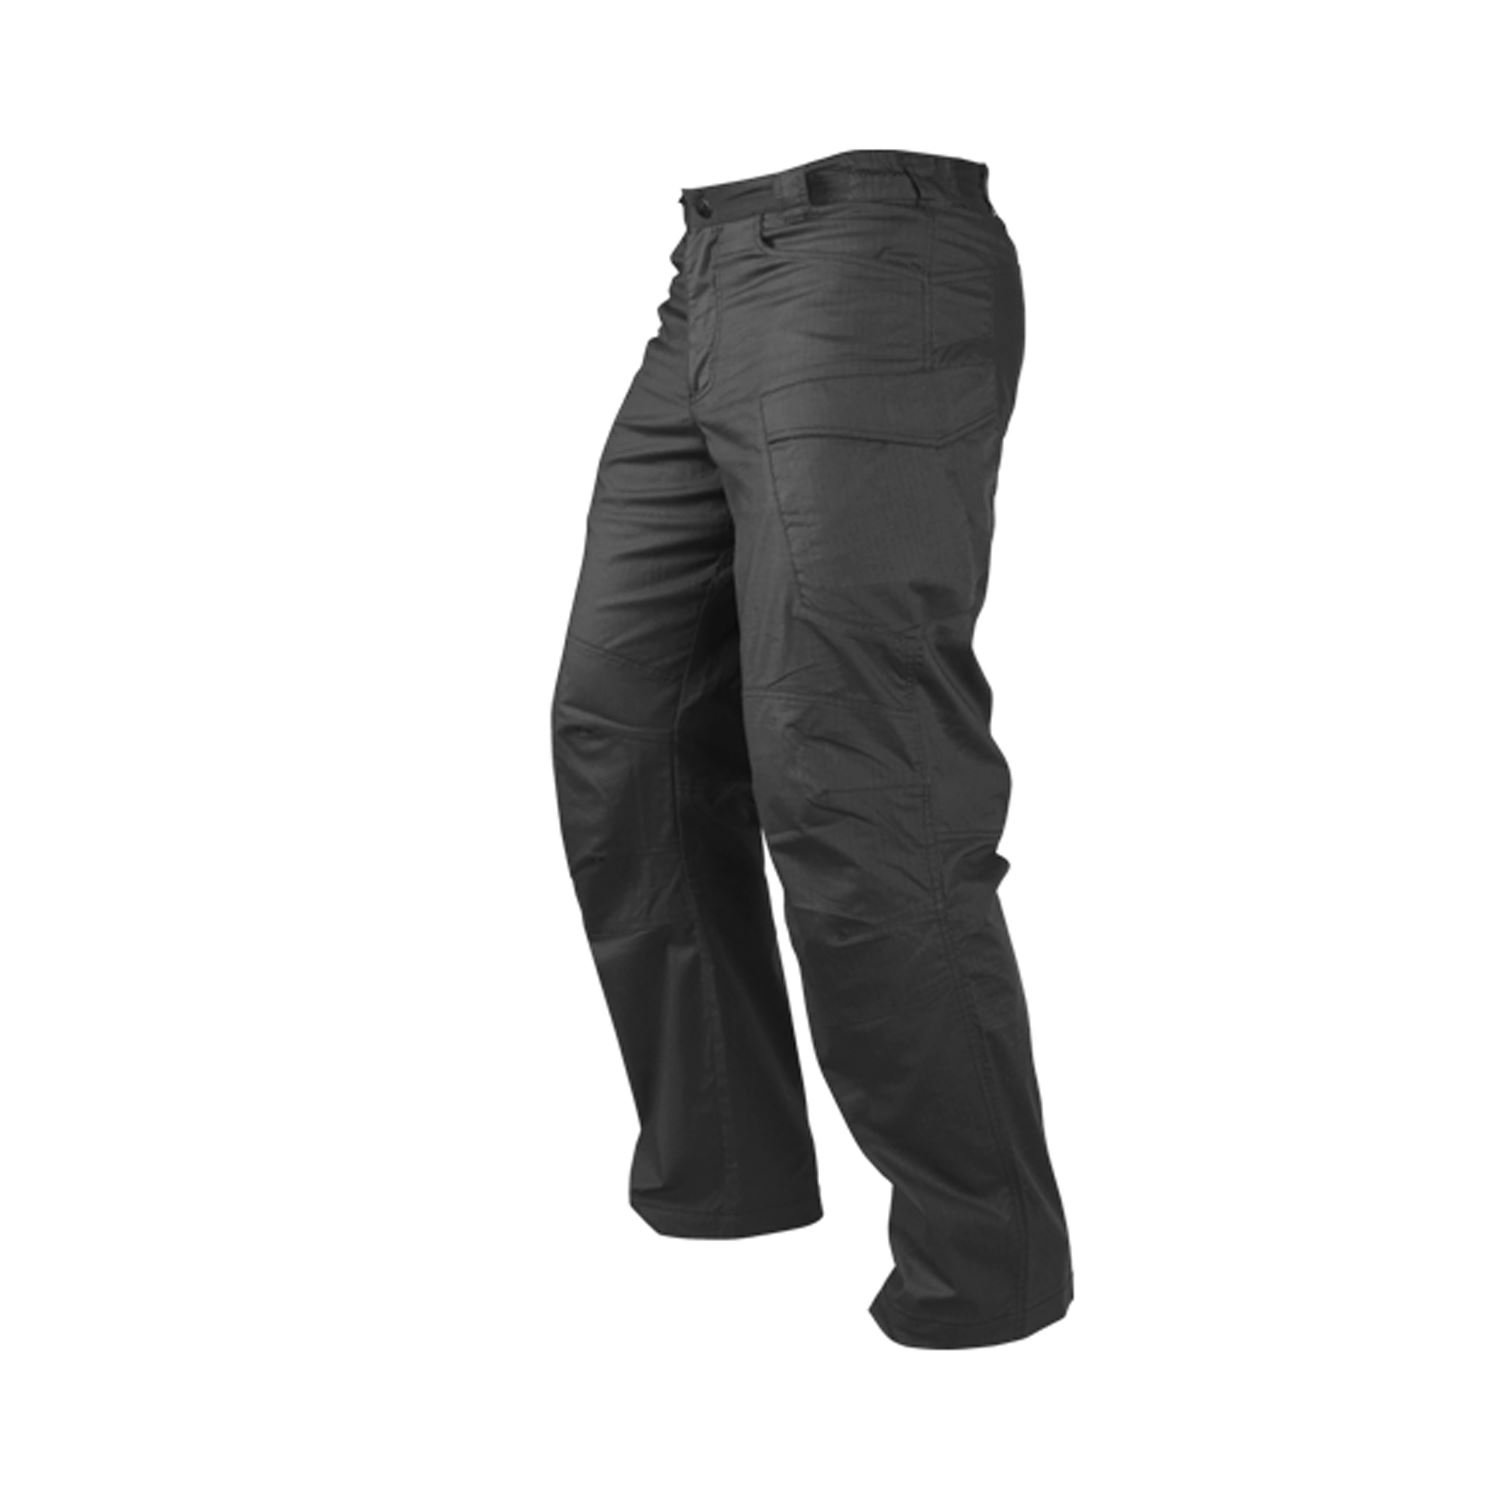 Condor Outdoor PANTS メンズ US サイズ: 30